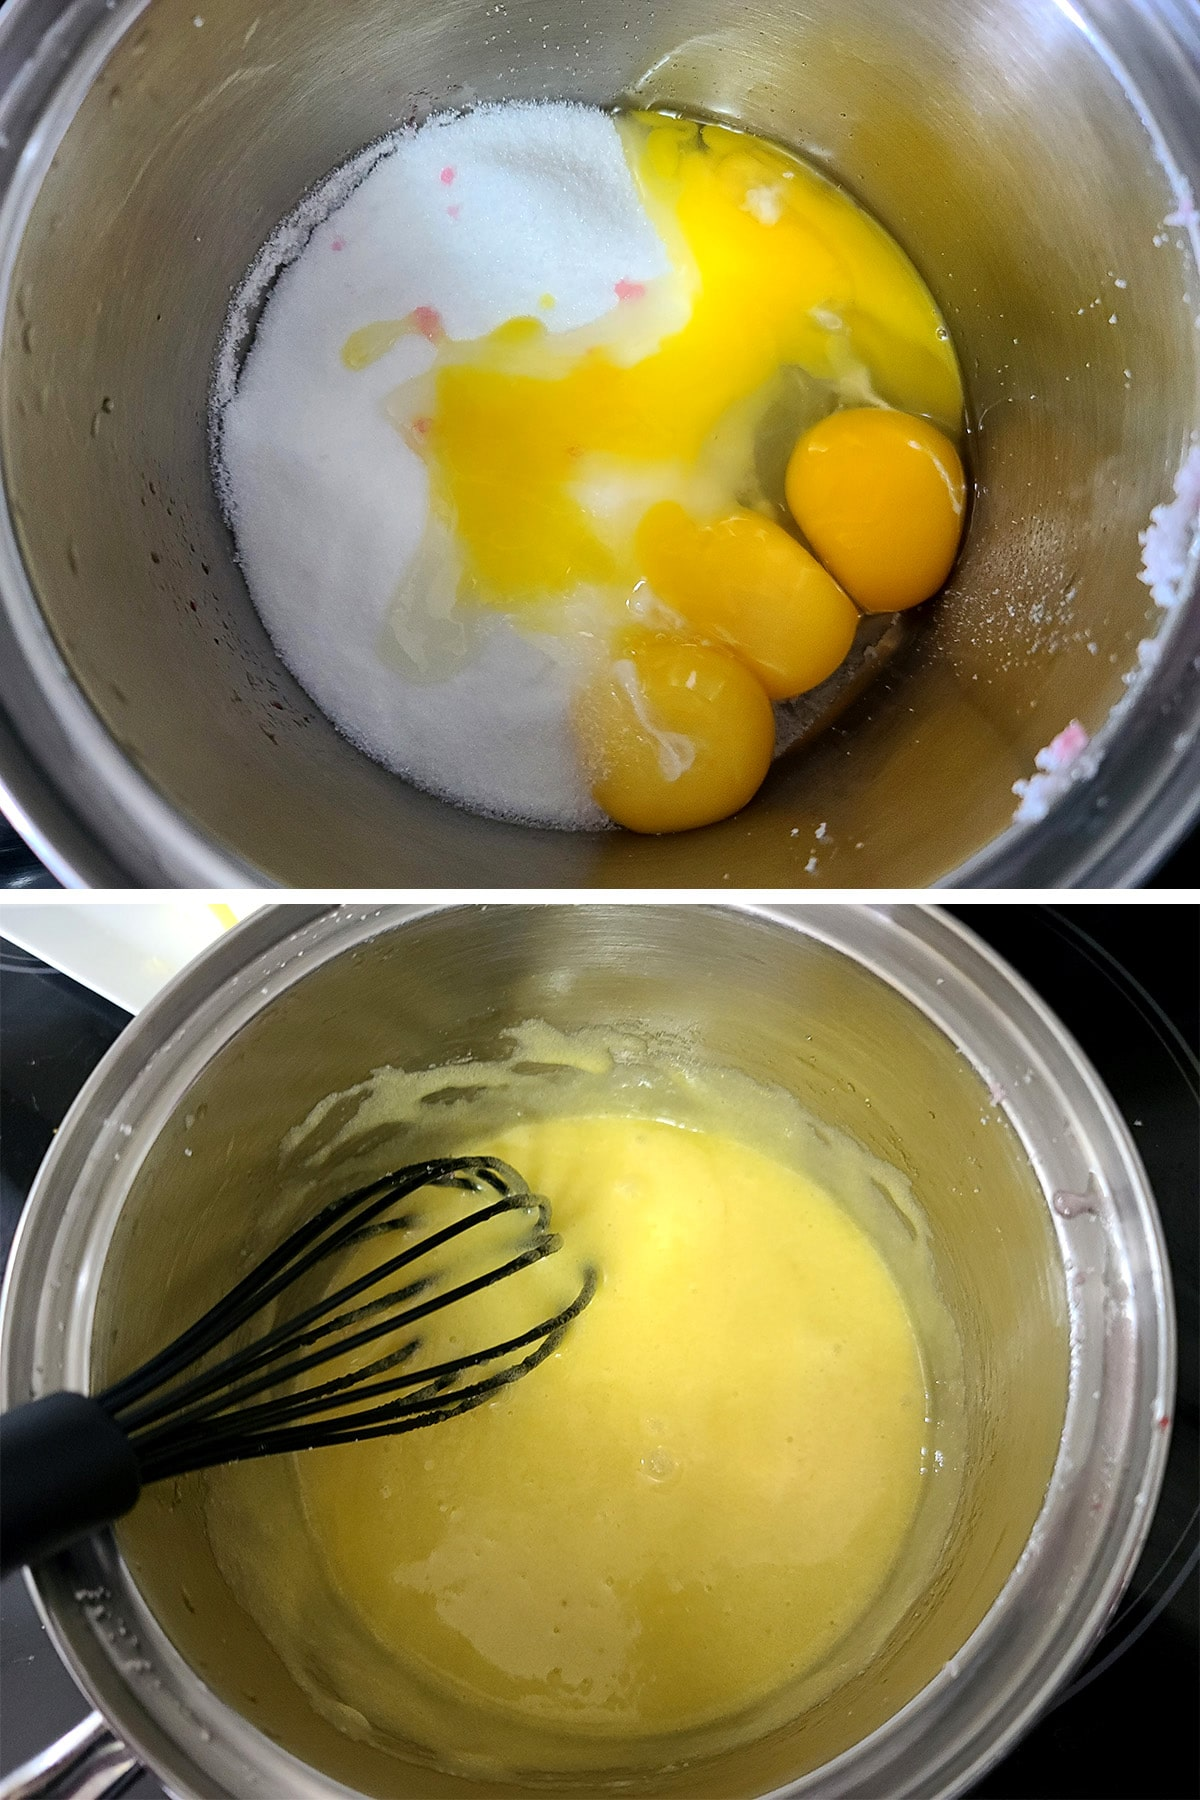 Eggs and sugar being whisked together.